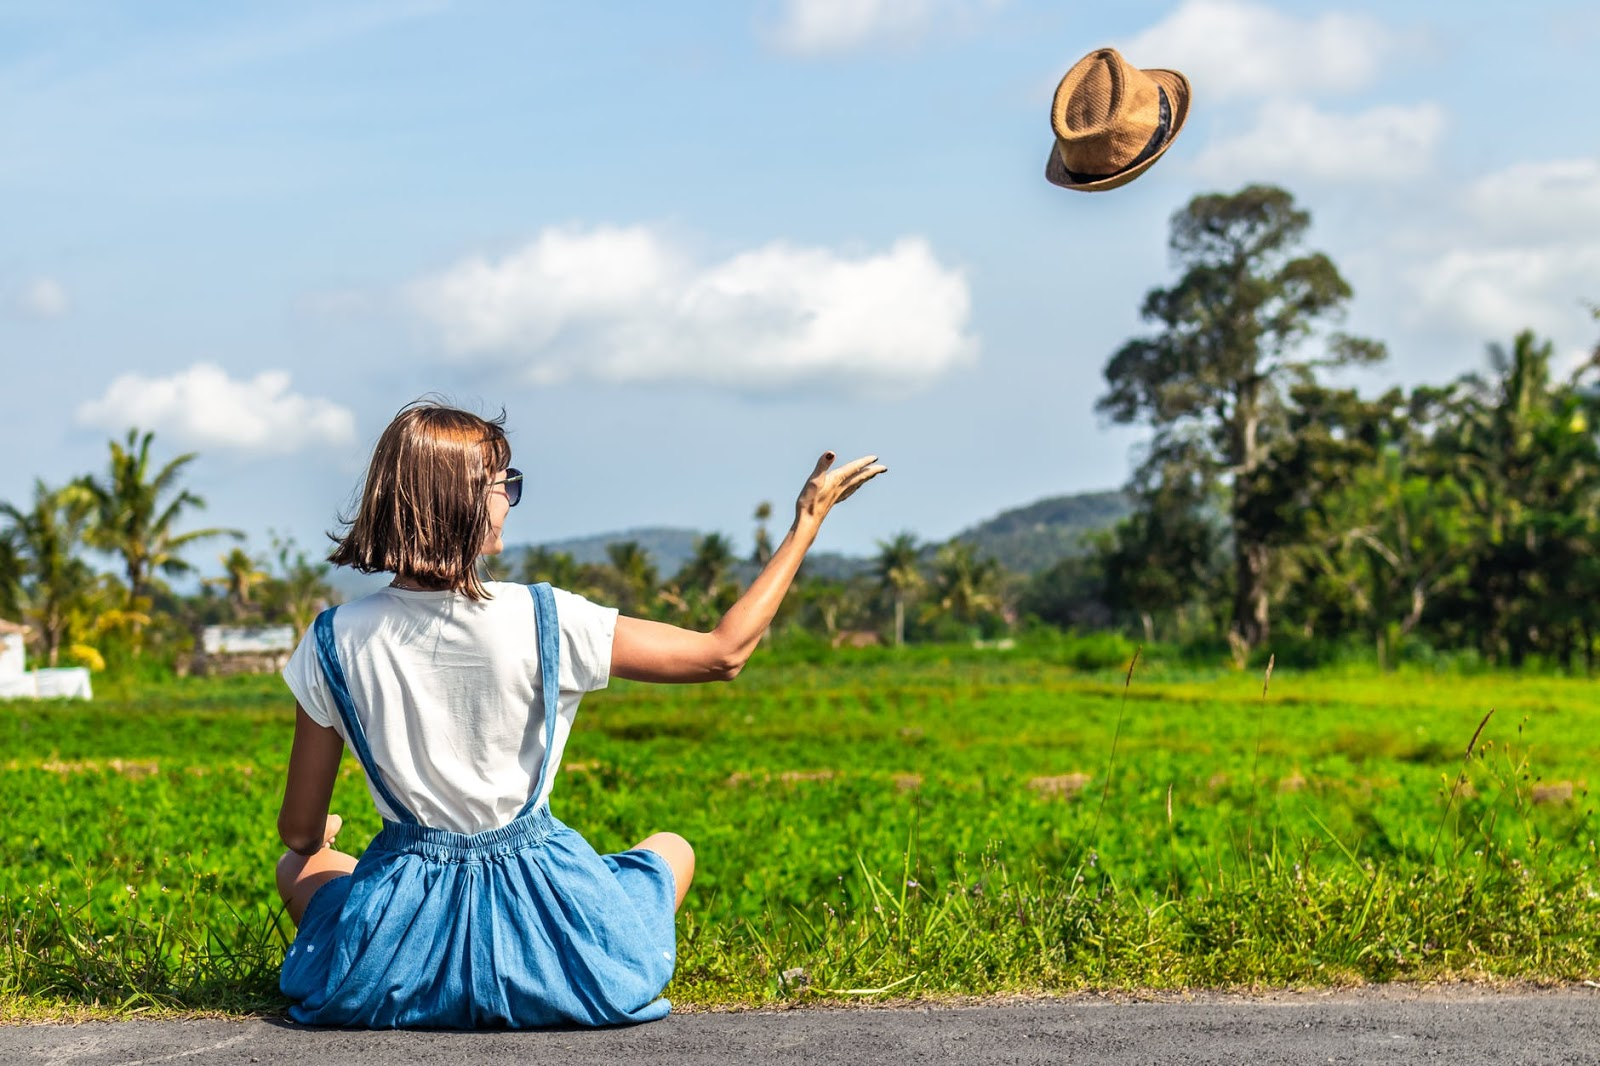 A girl in a blue skirt sits cross legged in a field and throws her hat into the air with a sense of freedom